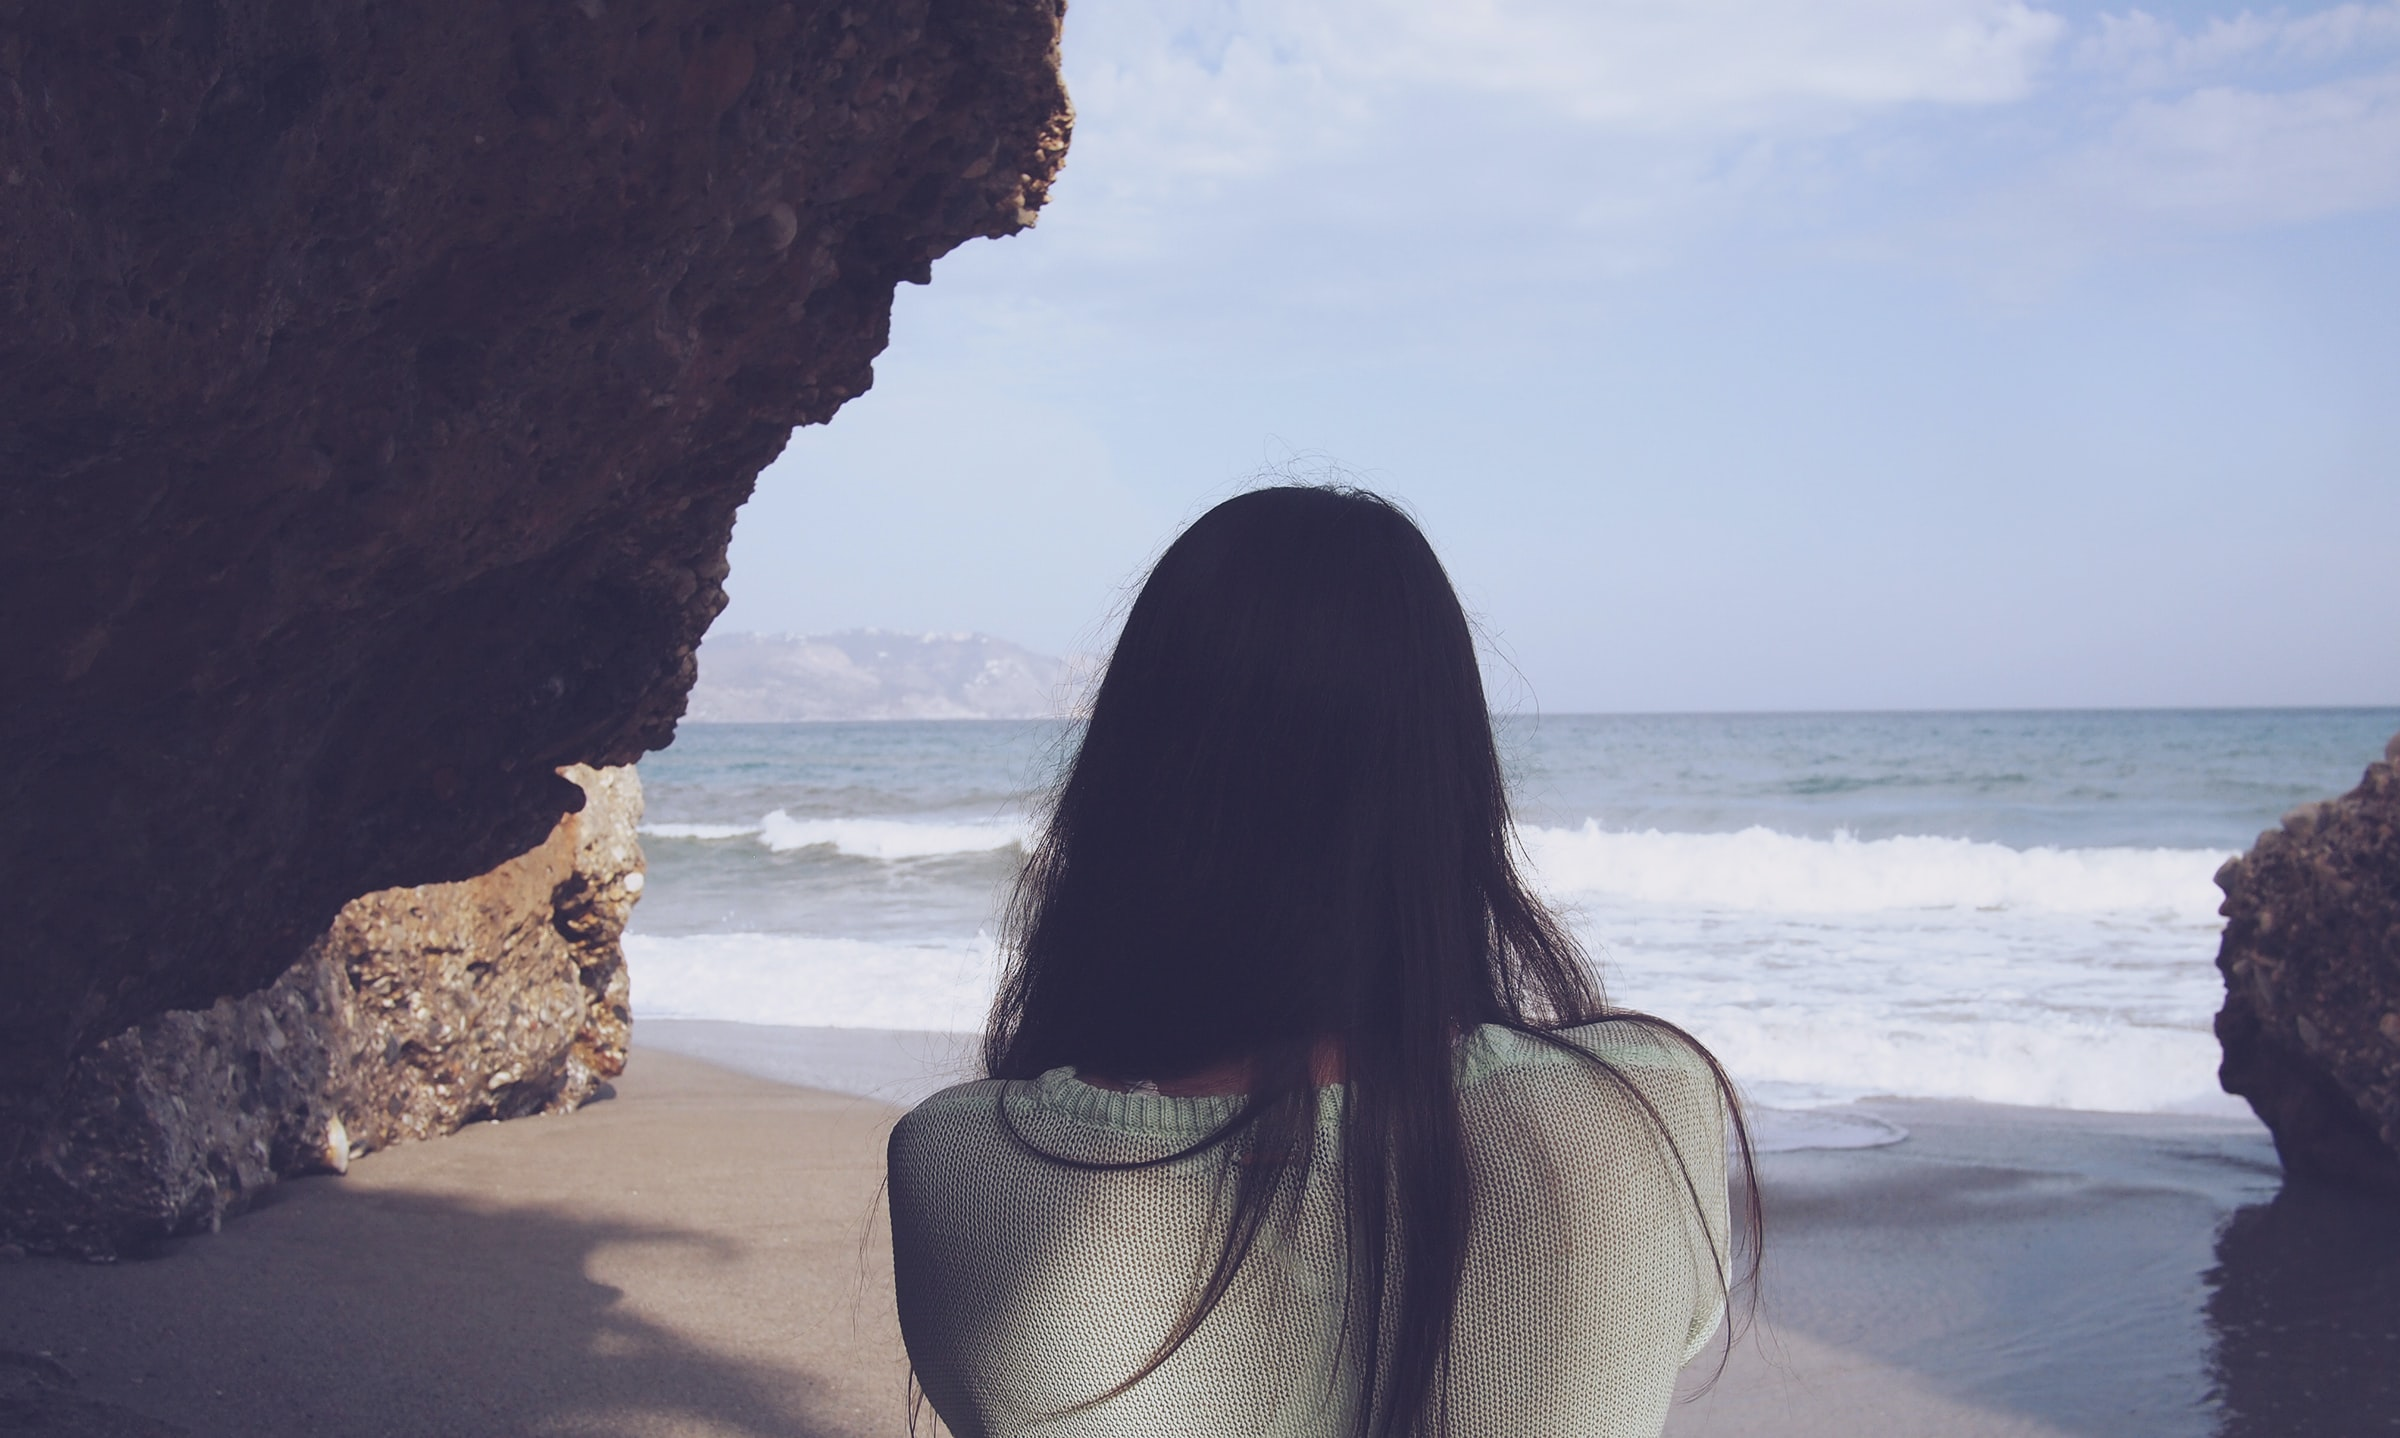 A dark-haired woman looking at the crashing sea waves under a cliff